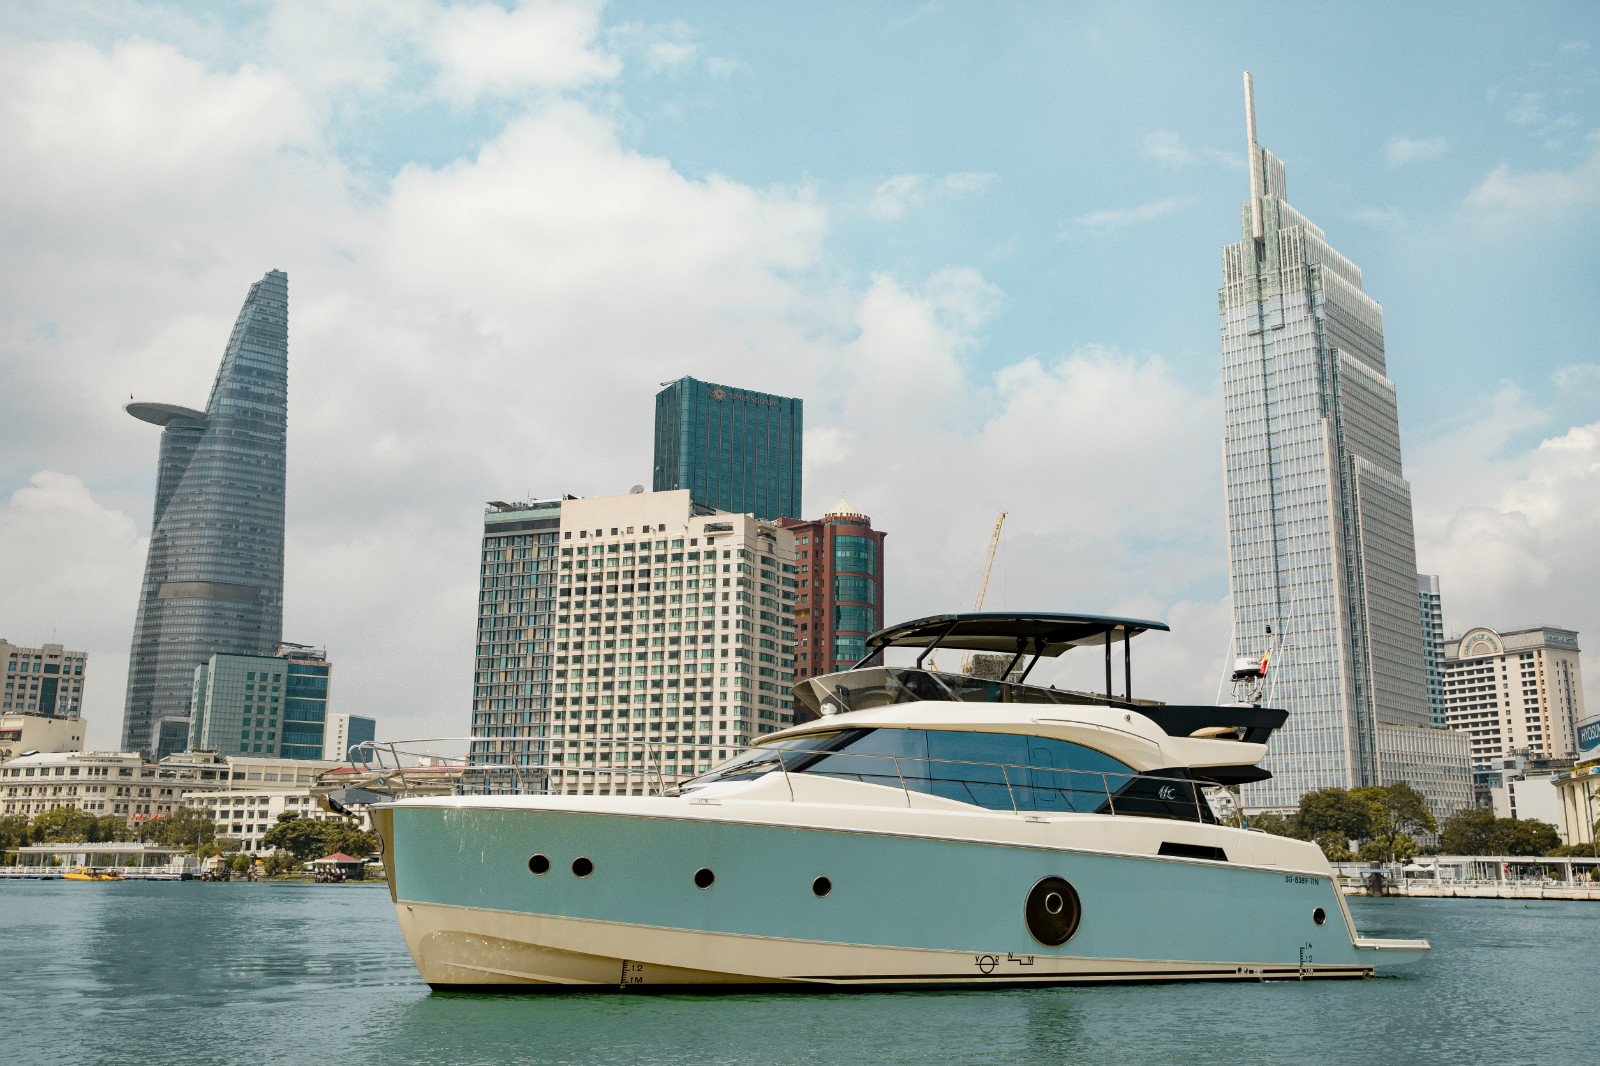 THE REVERIE SAIGON TAKES TO THE WATER WITH 60 FEET OF ITALIAN ELEGANCE news cover image